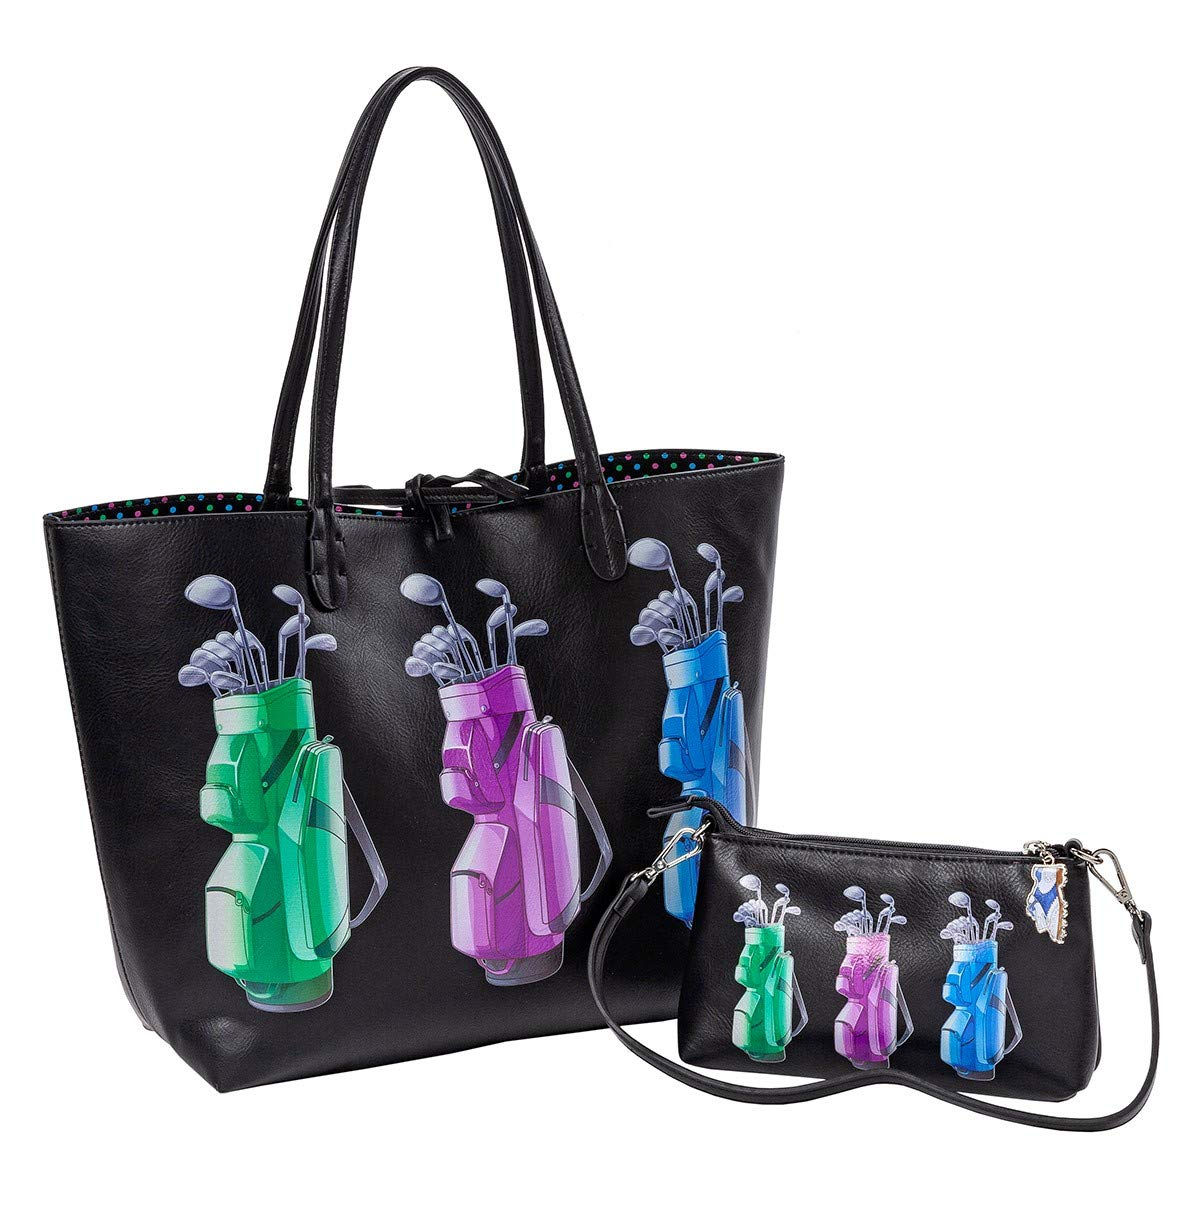 Sydney Love Sport Golf Bag Print Reversible Tote & Wristlet, Black Multi